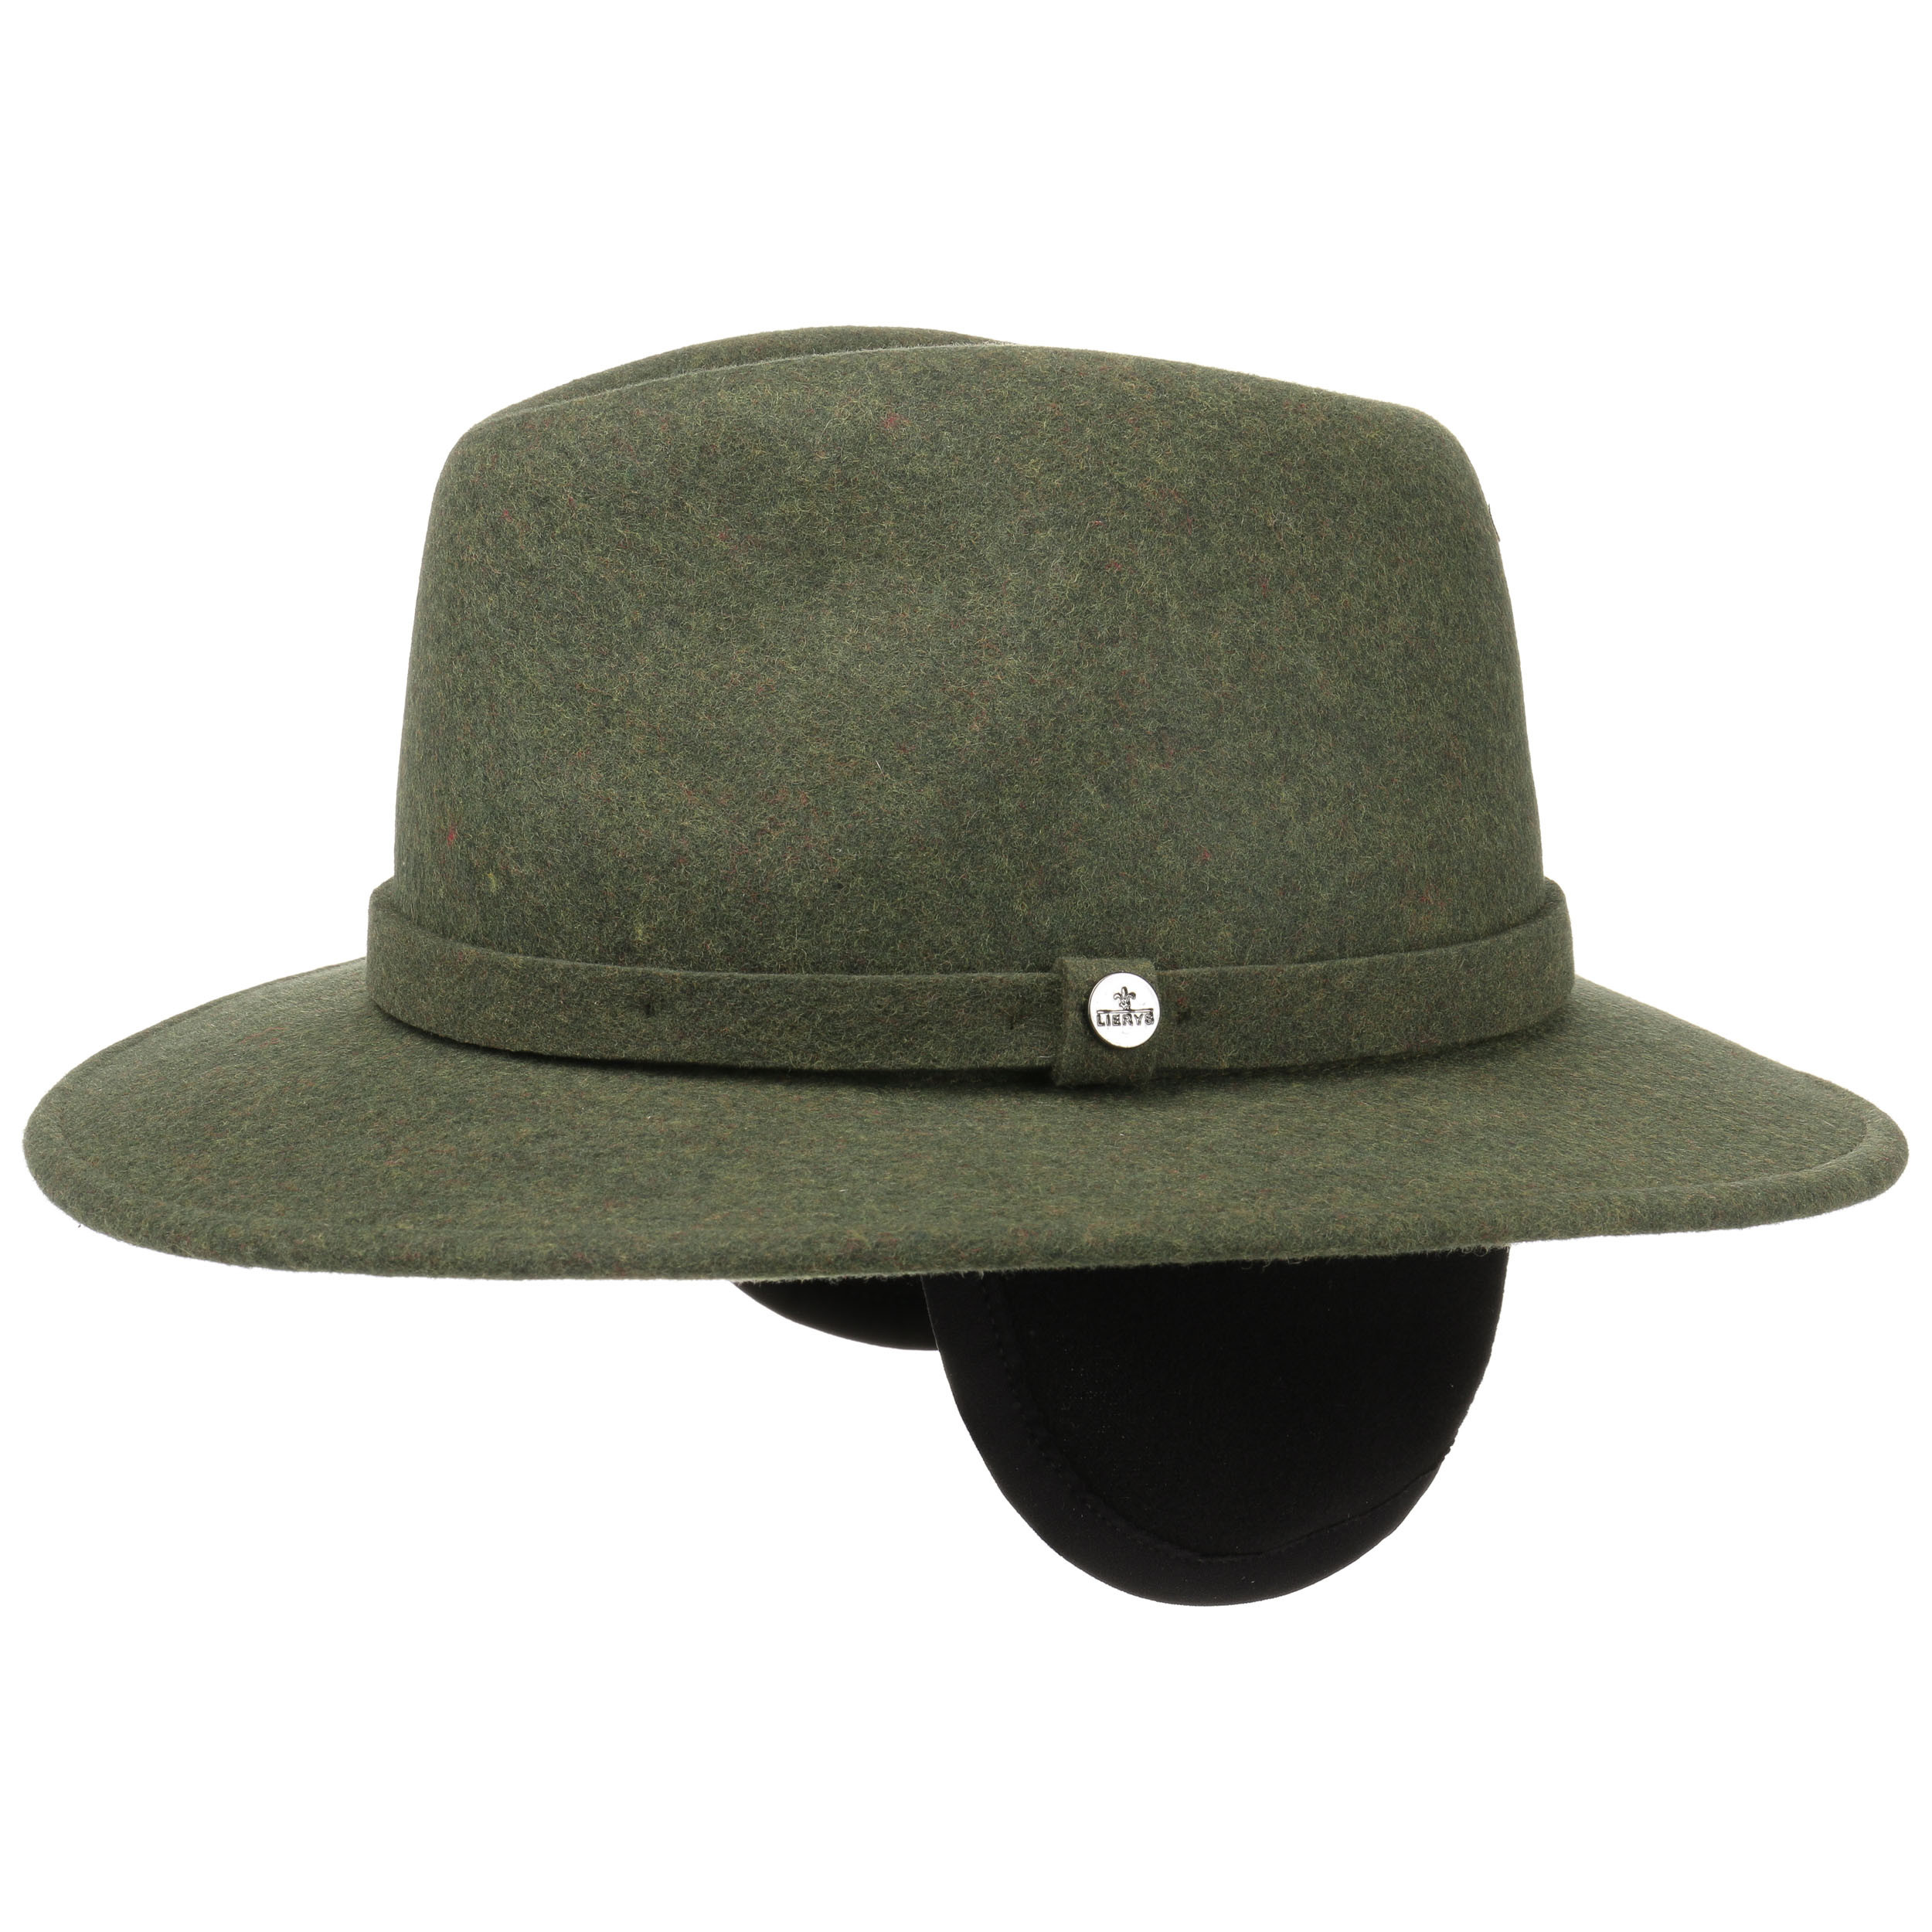 Hat with Ear Flaps Best Of Wool Traveller Hat with Ear Flaps by Lierys Eur 69 95 Of Top 42 Photos Hat with Ear Flaps